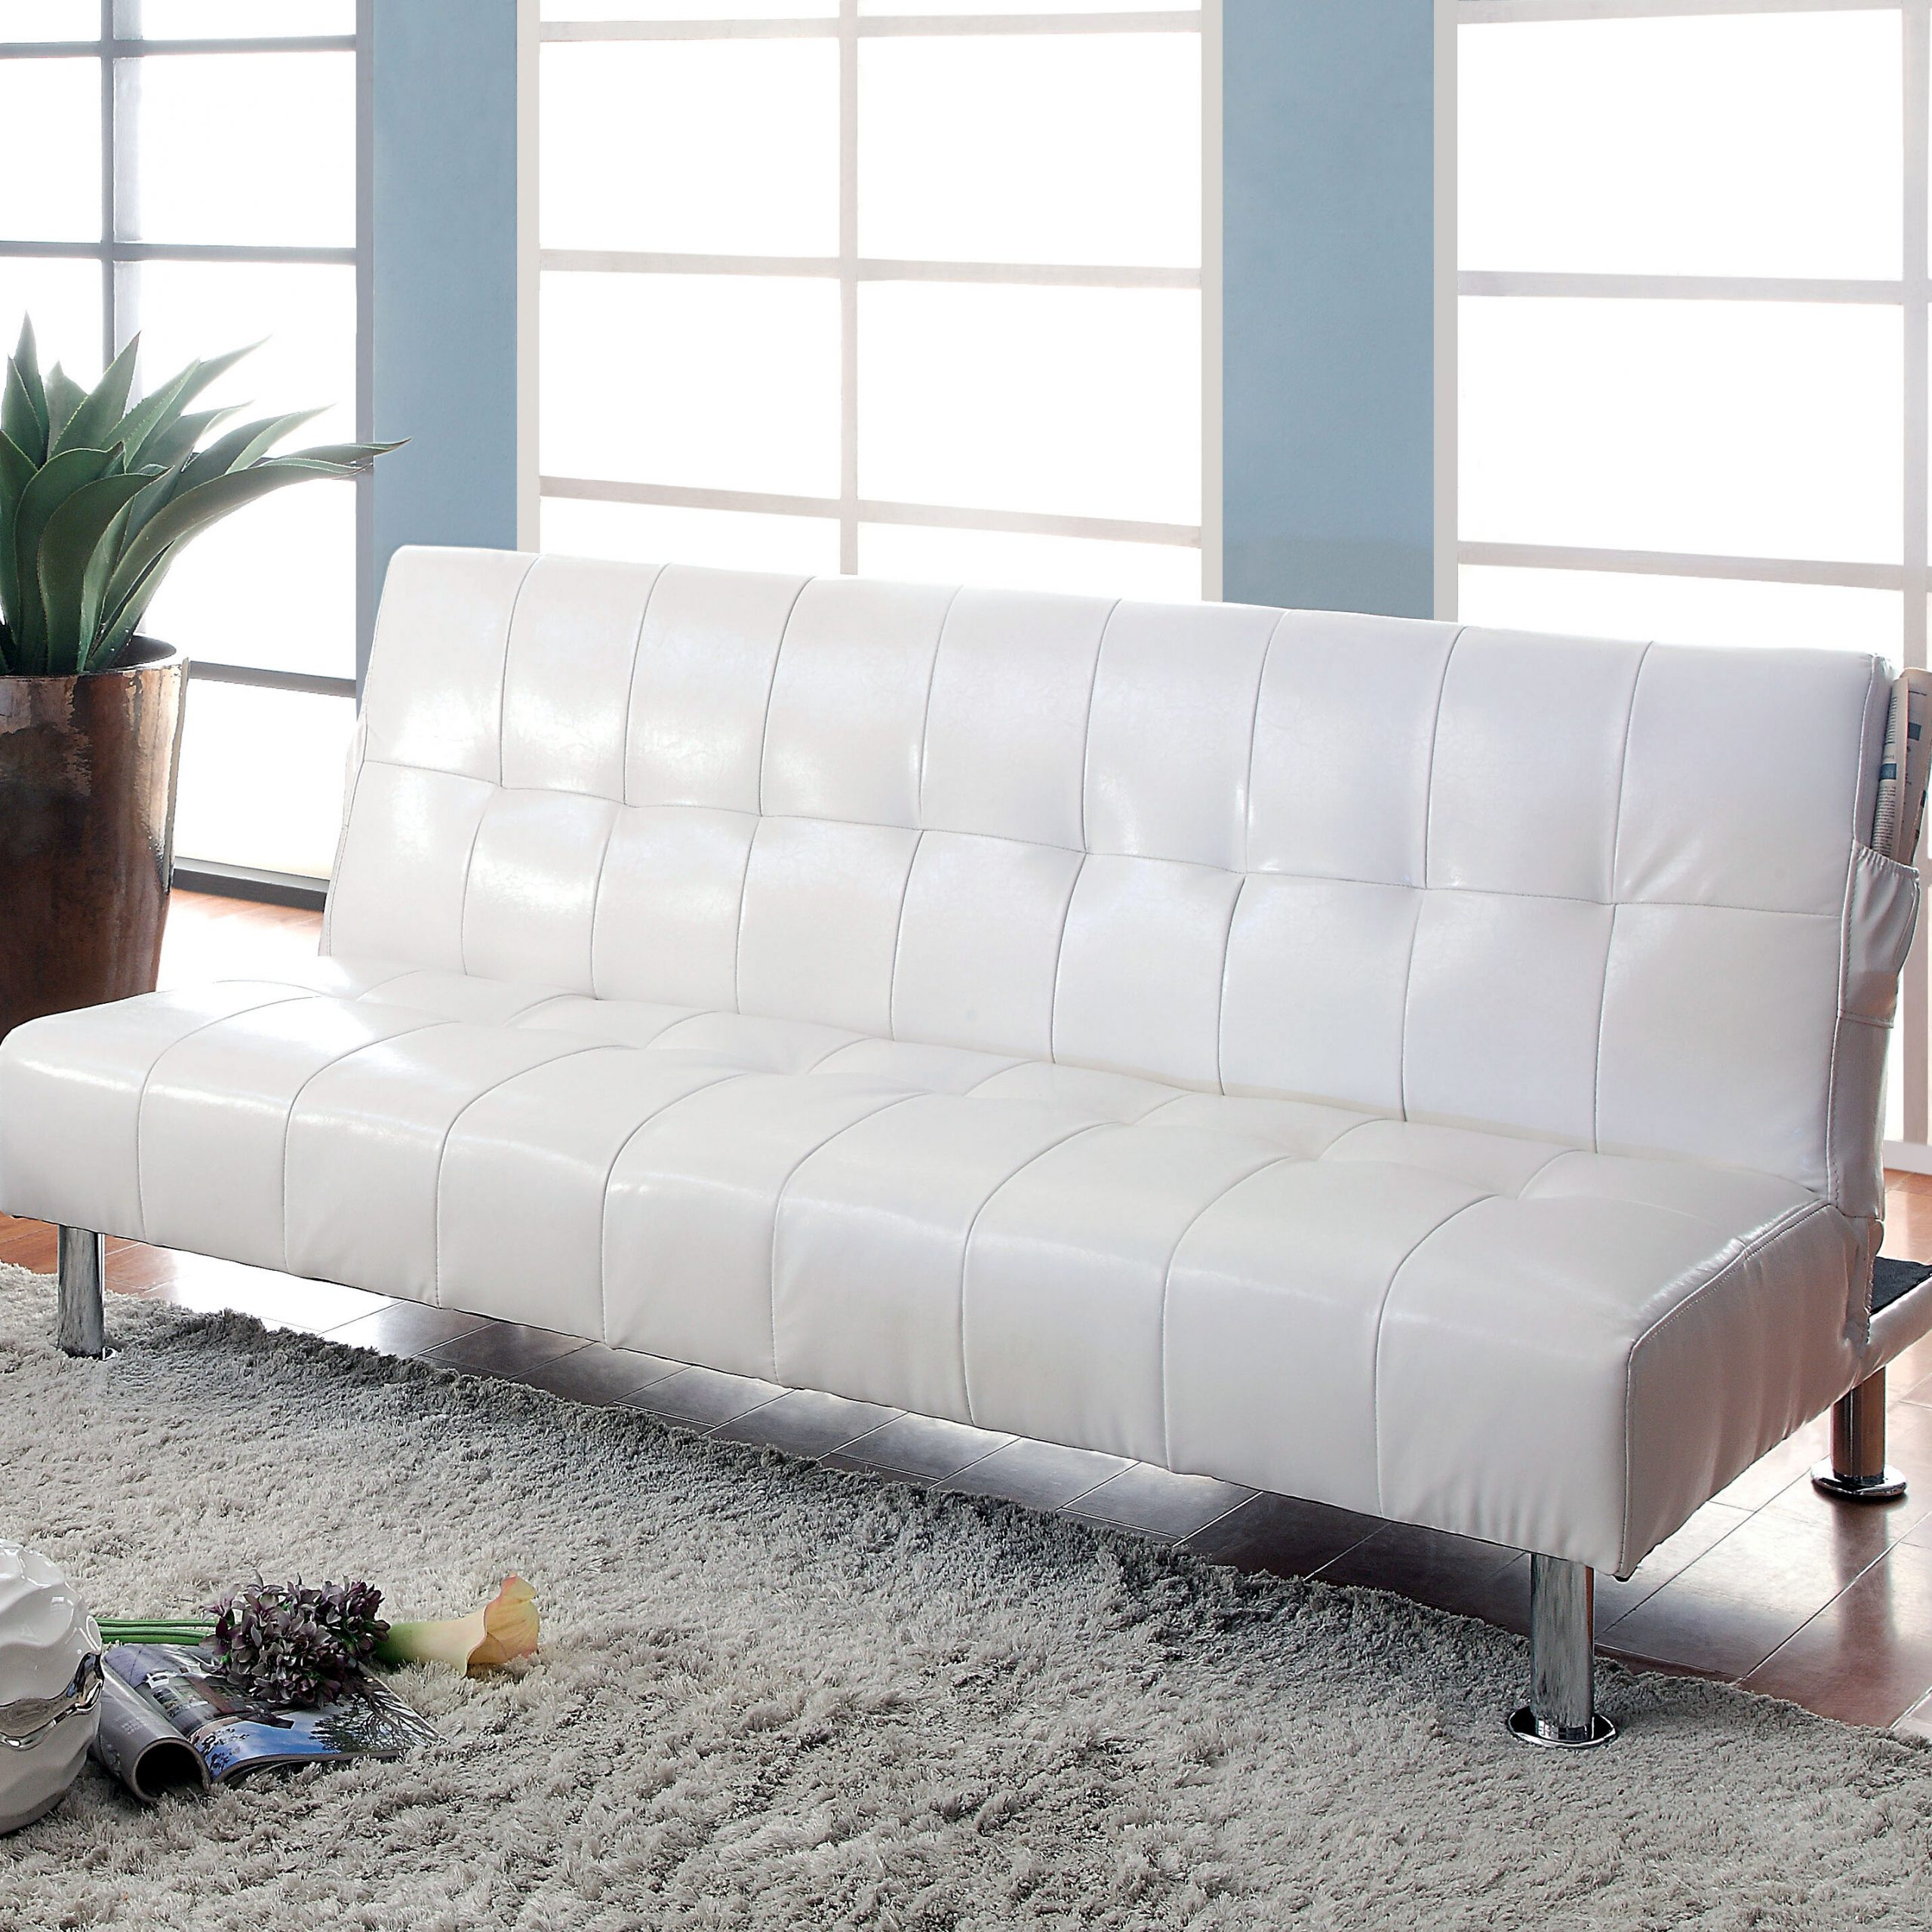 Perz Tufted Convertible Sofa For Perz Tufted Faux Leather Convertible Chairs (View 5 of 15)